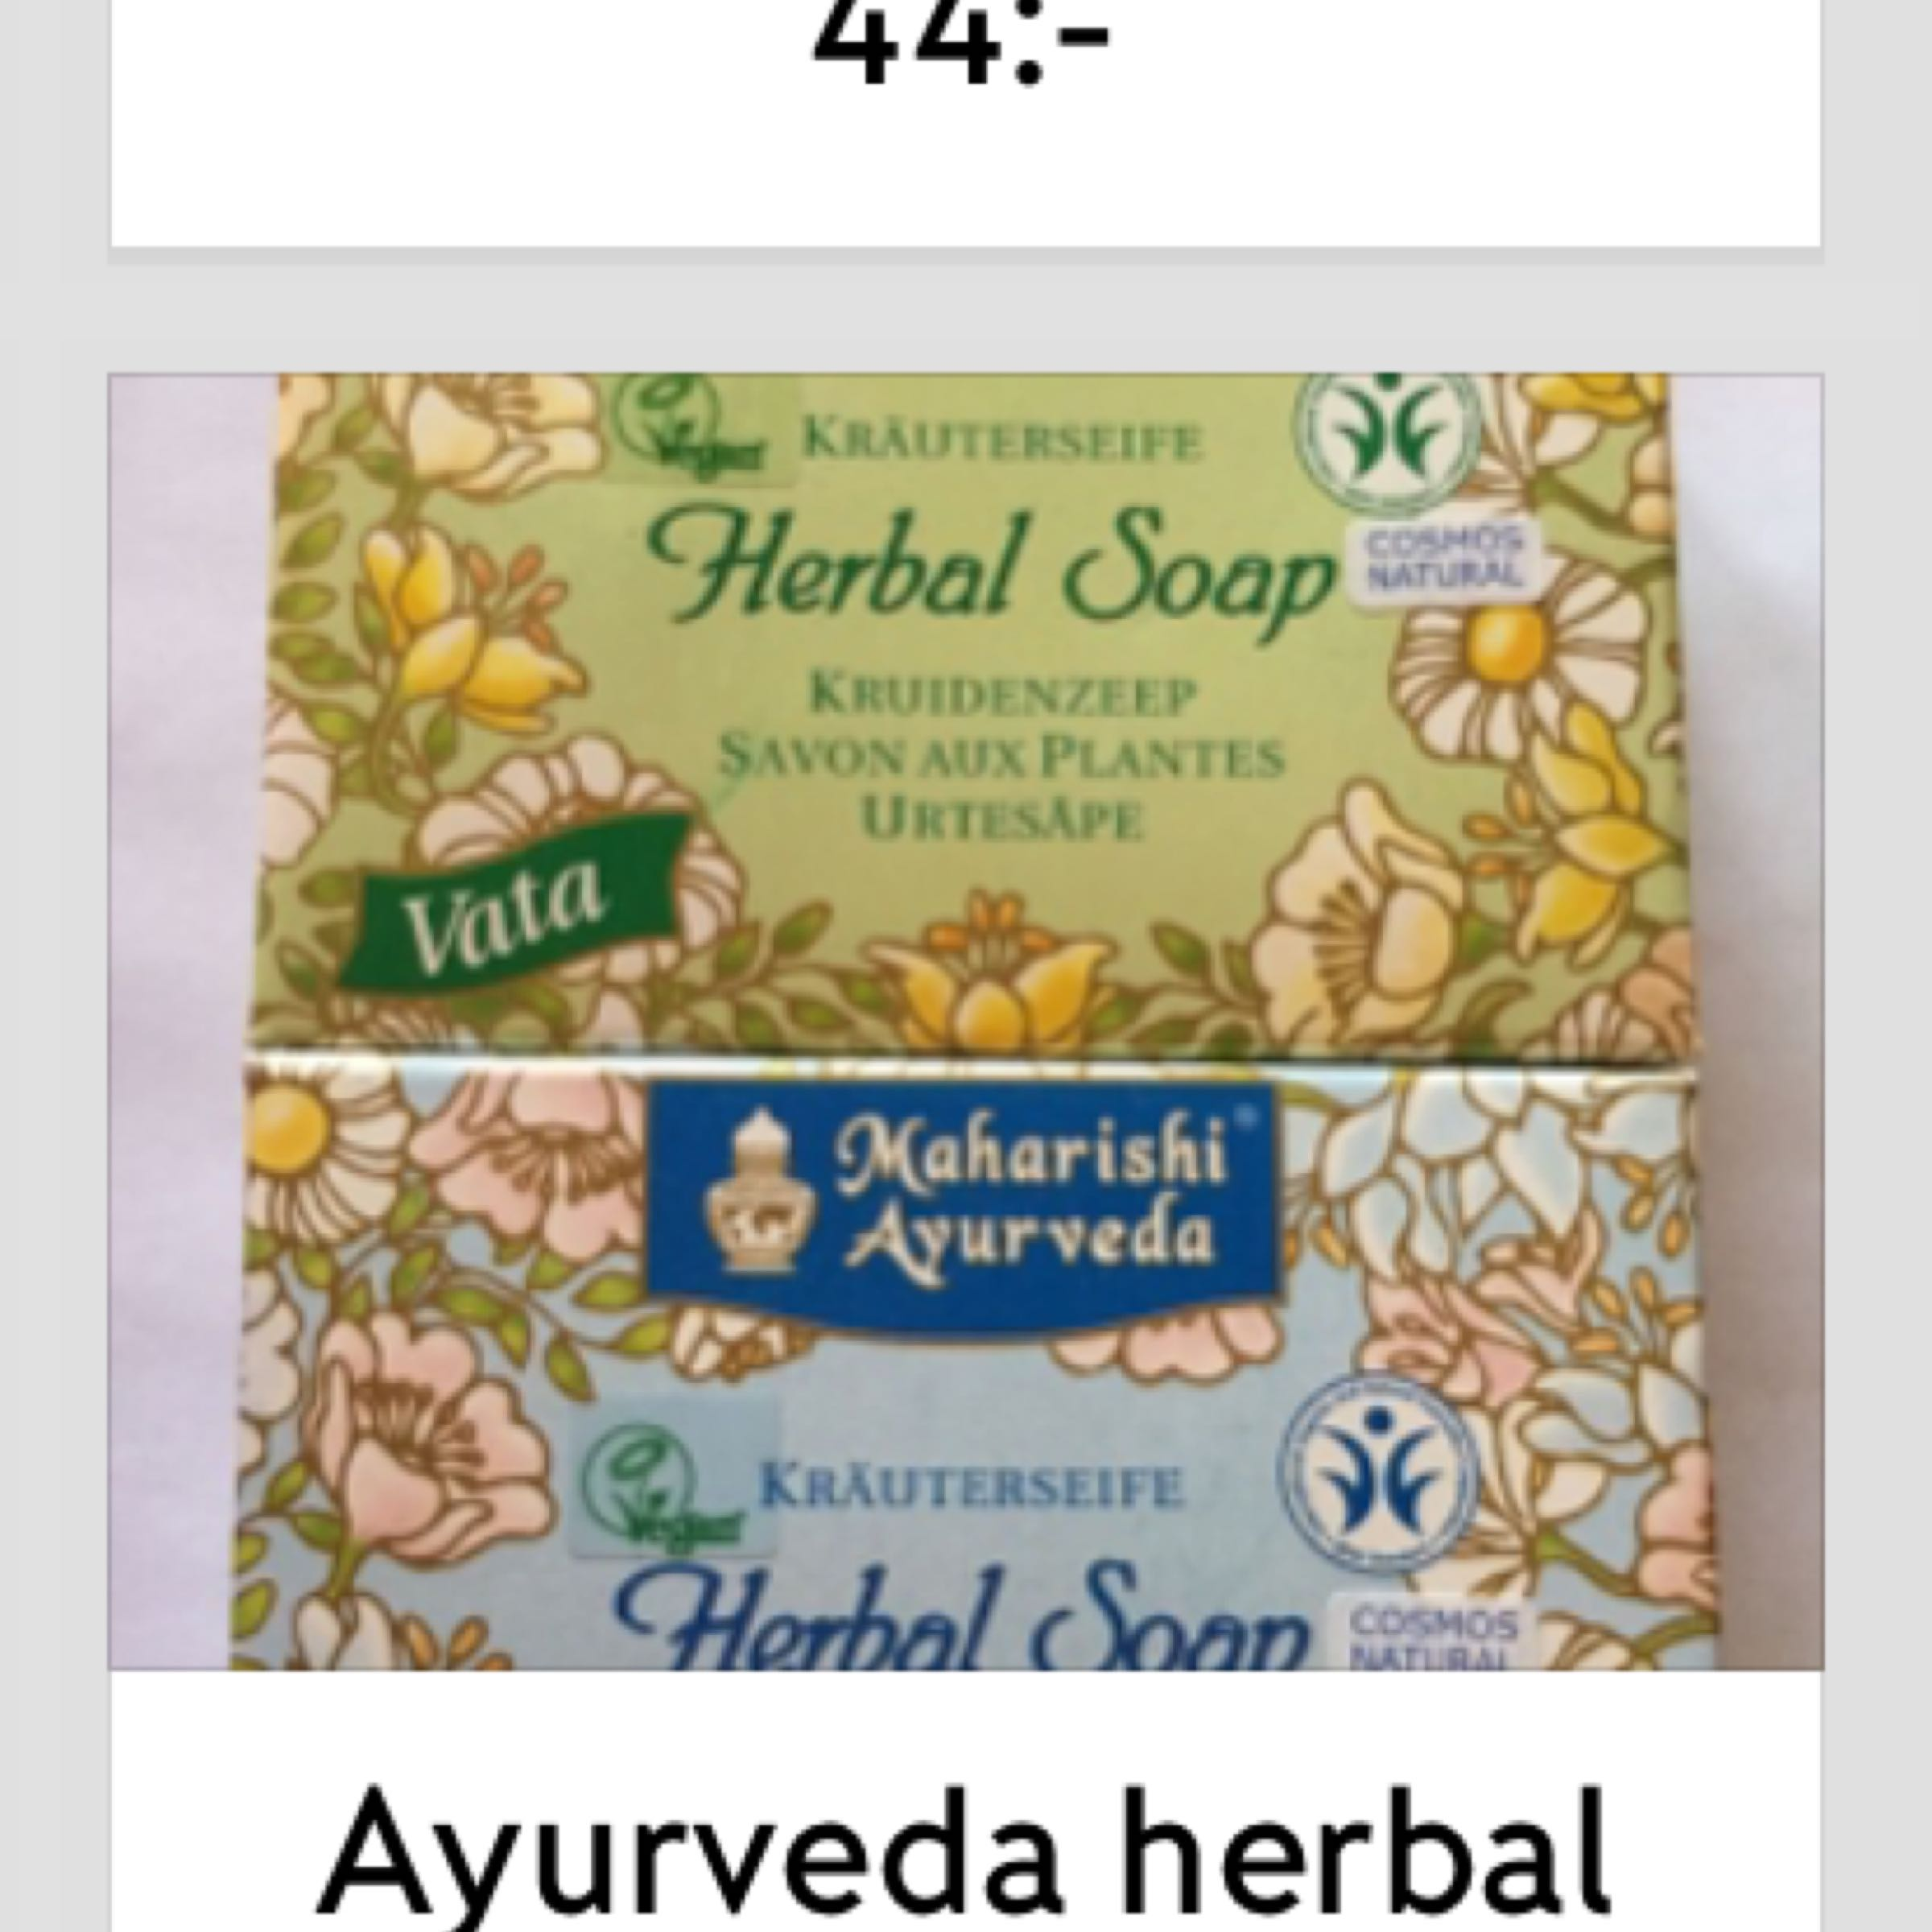 Ayurveda herbal soap